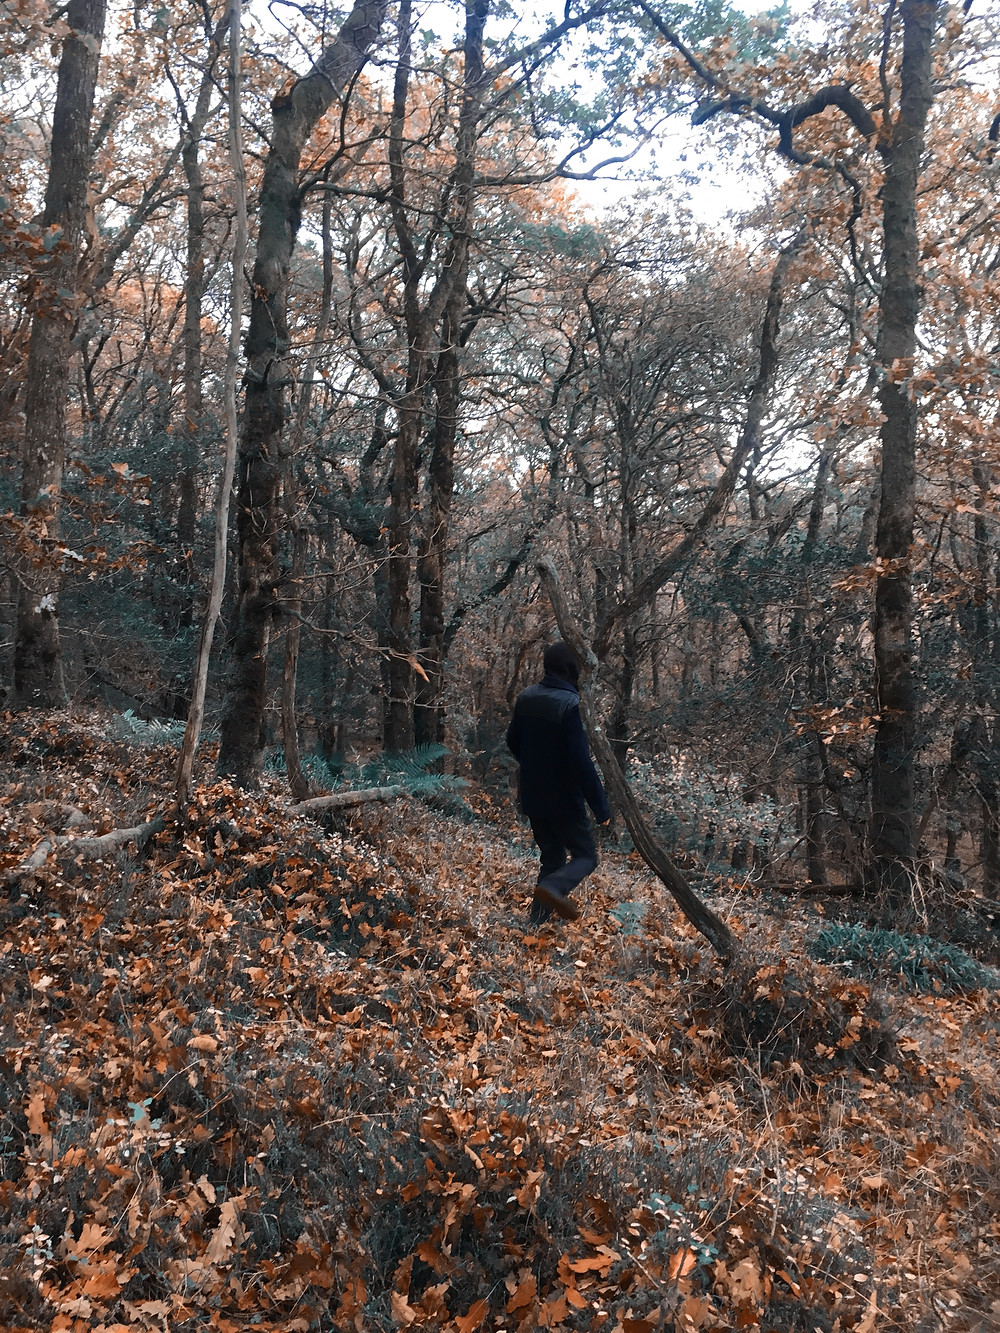 autumn landscape of woodland with figure of person walking in center